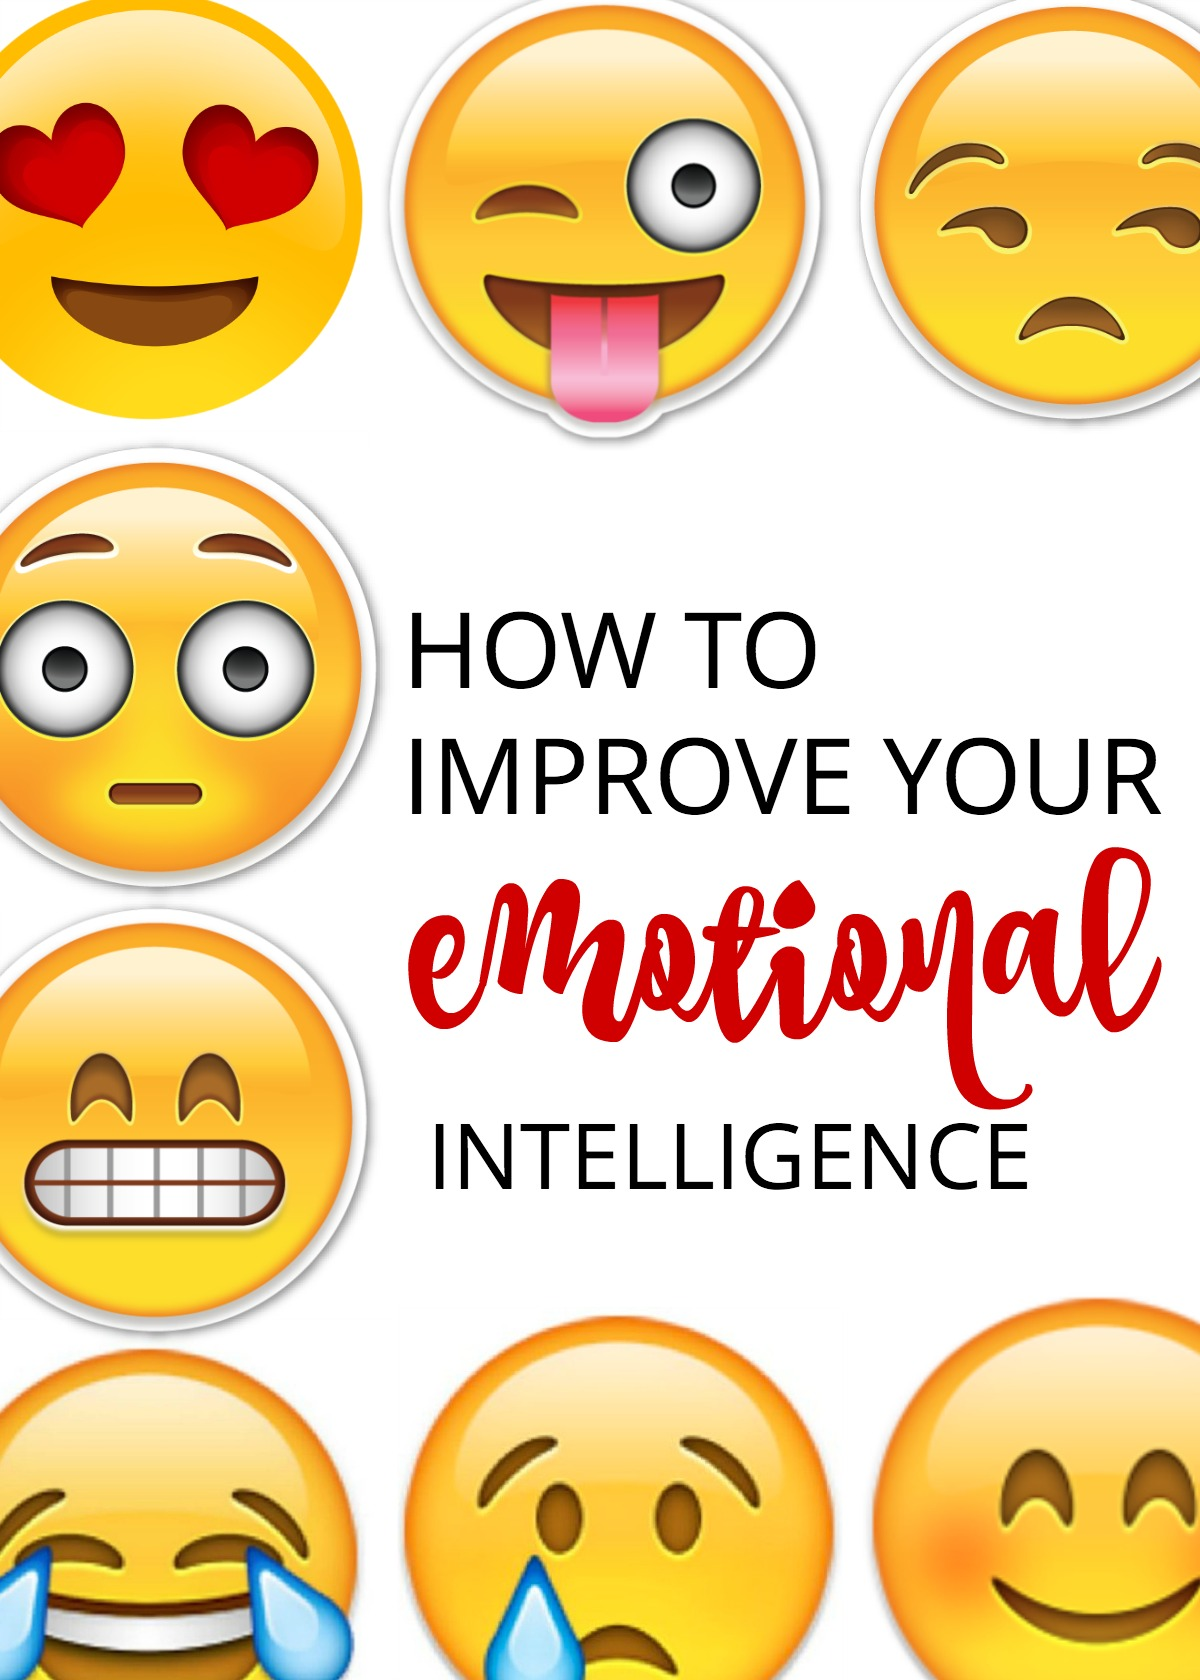 Do you let your emotions get the better of you? Here's a little introduction to emotional intelligence, and how you can better interpret feelings for improved relationships.